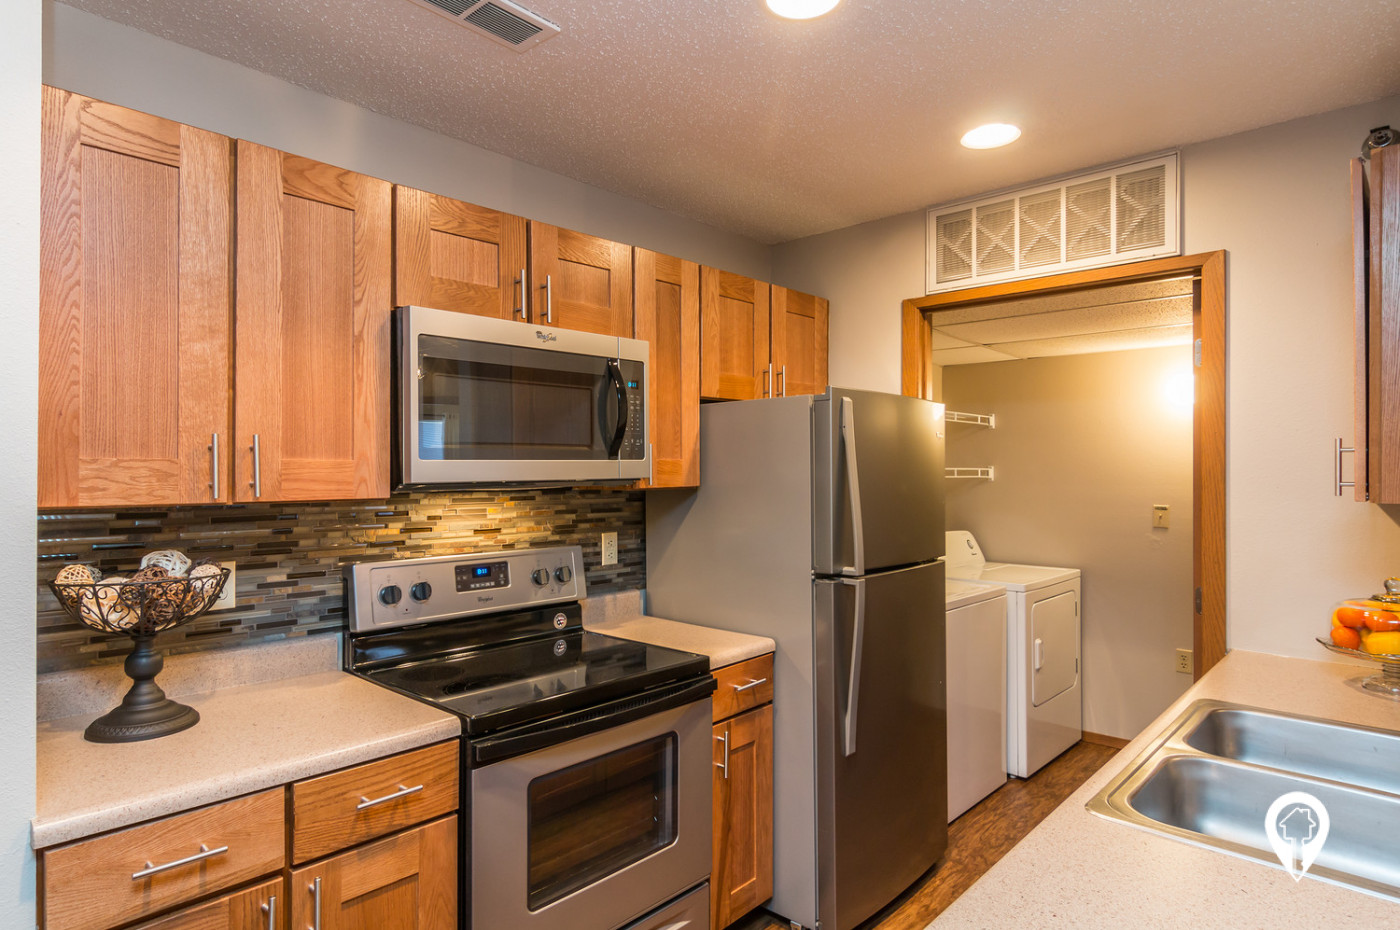 Oxbow-Park-Apartments-Oxbow-Living-Is-For-You